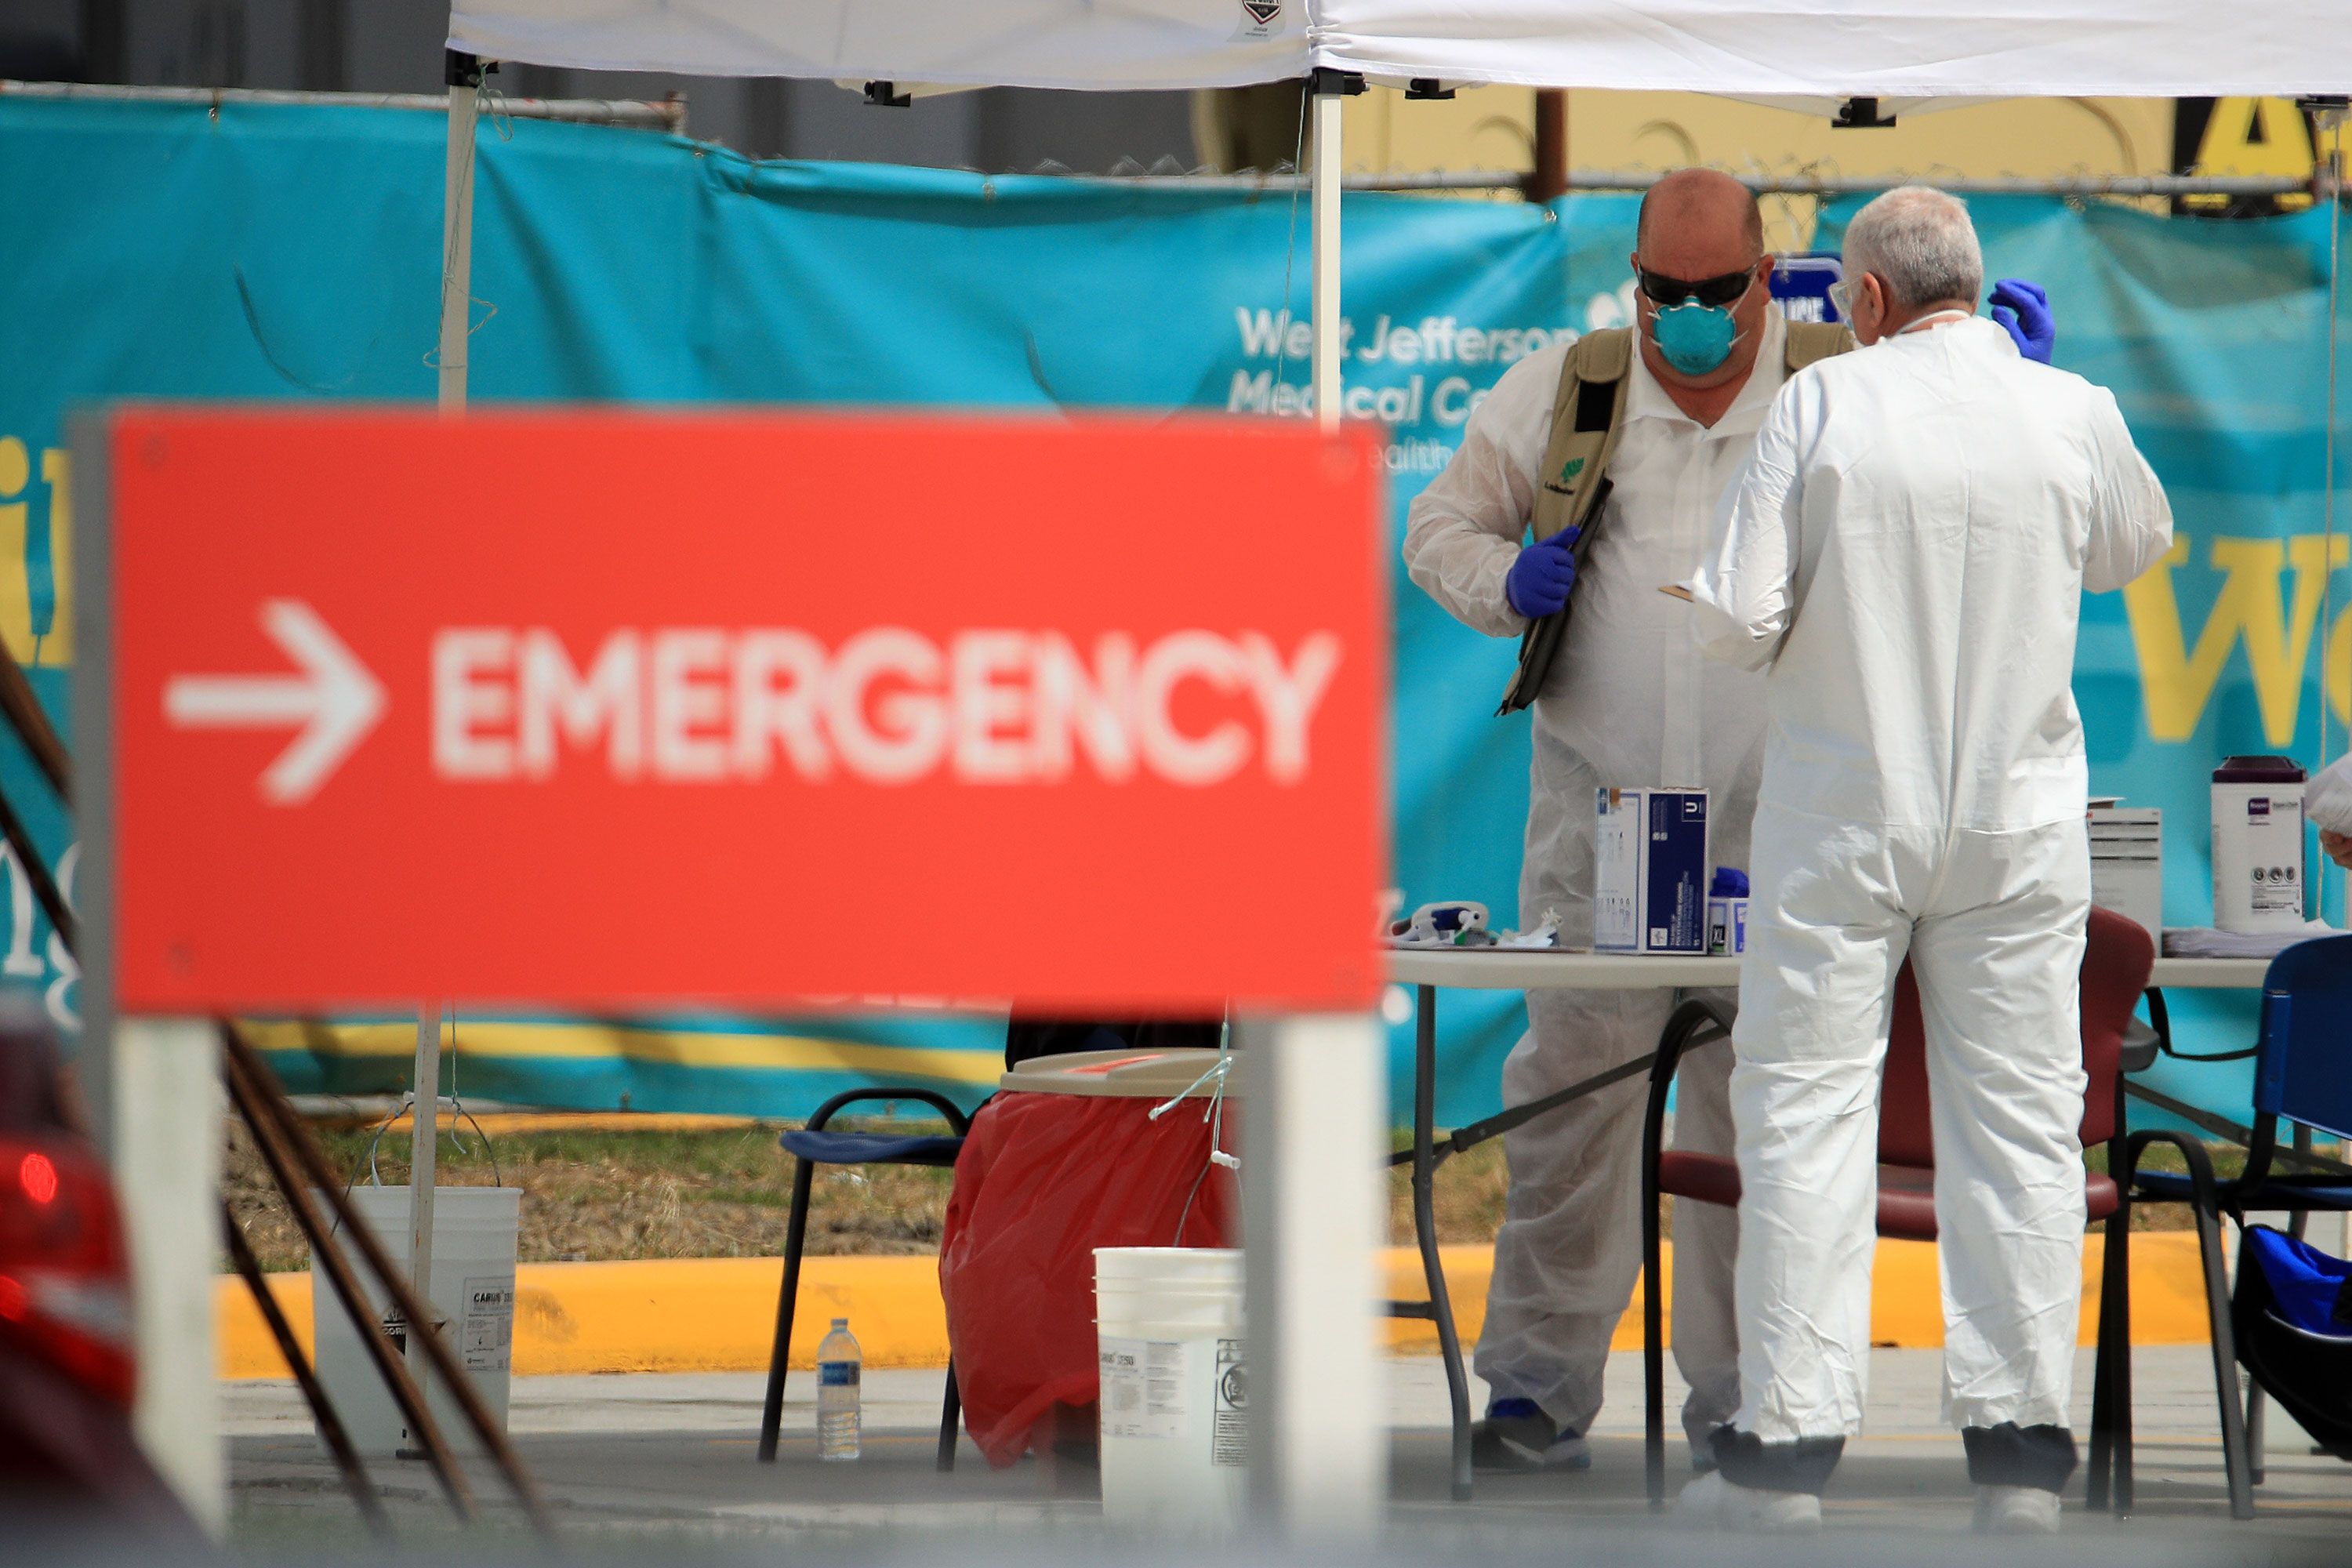 Medical personnel work at a drive-thru coronavirus testing station on March 17 in New Orleans, Louisiana.